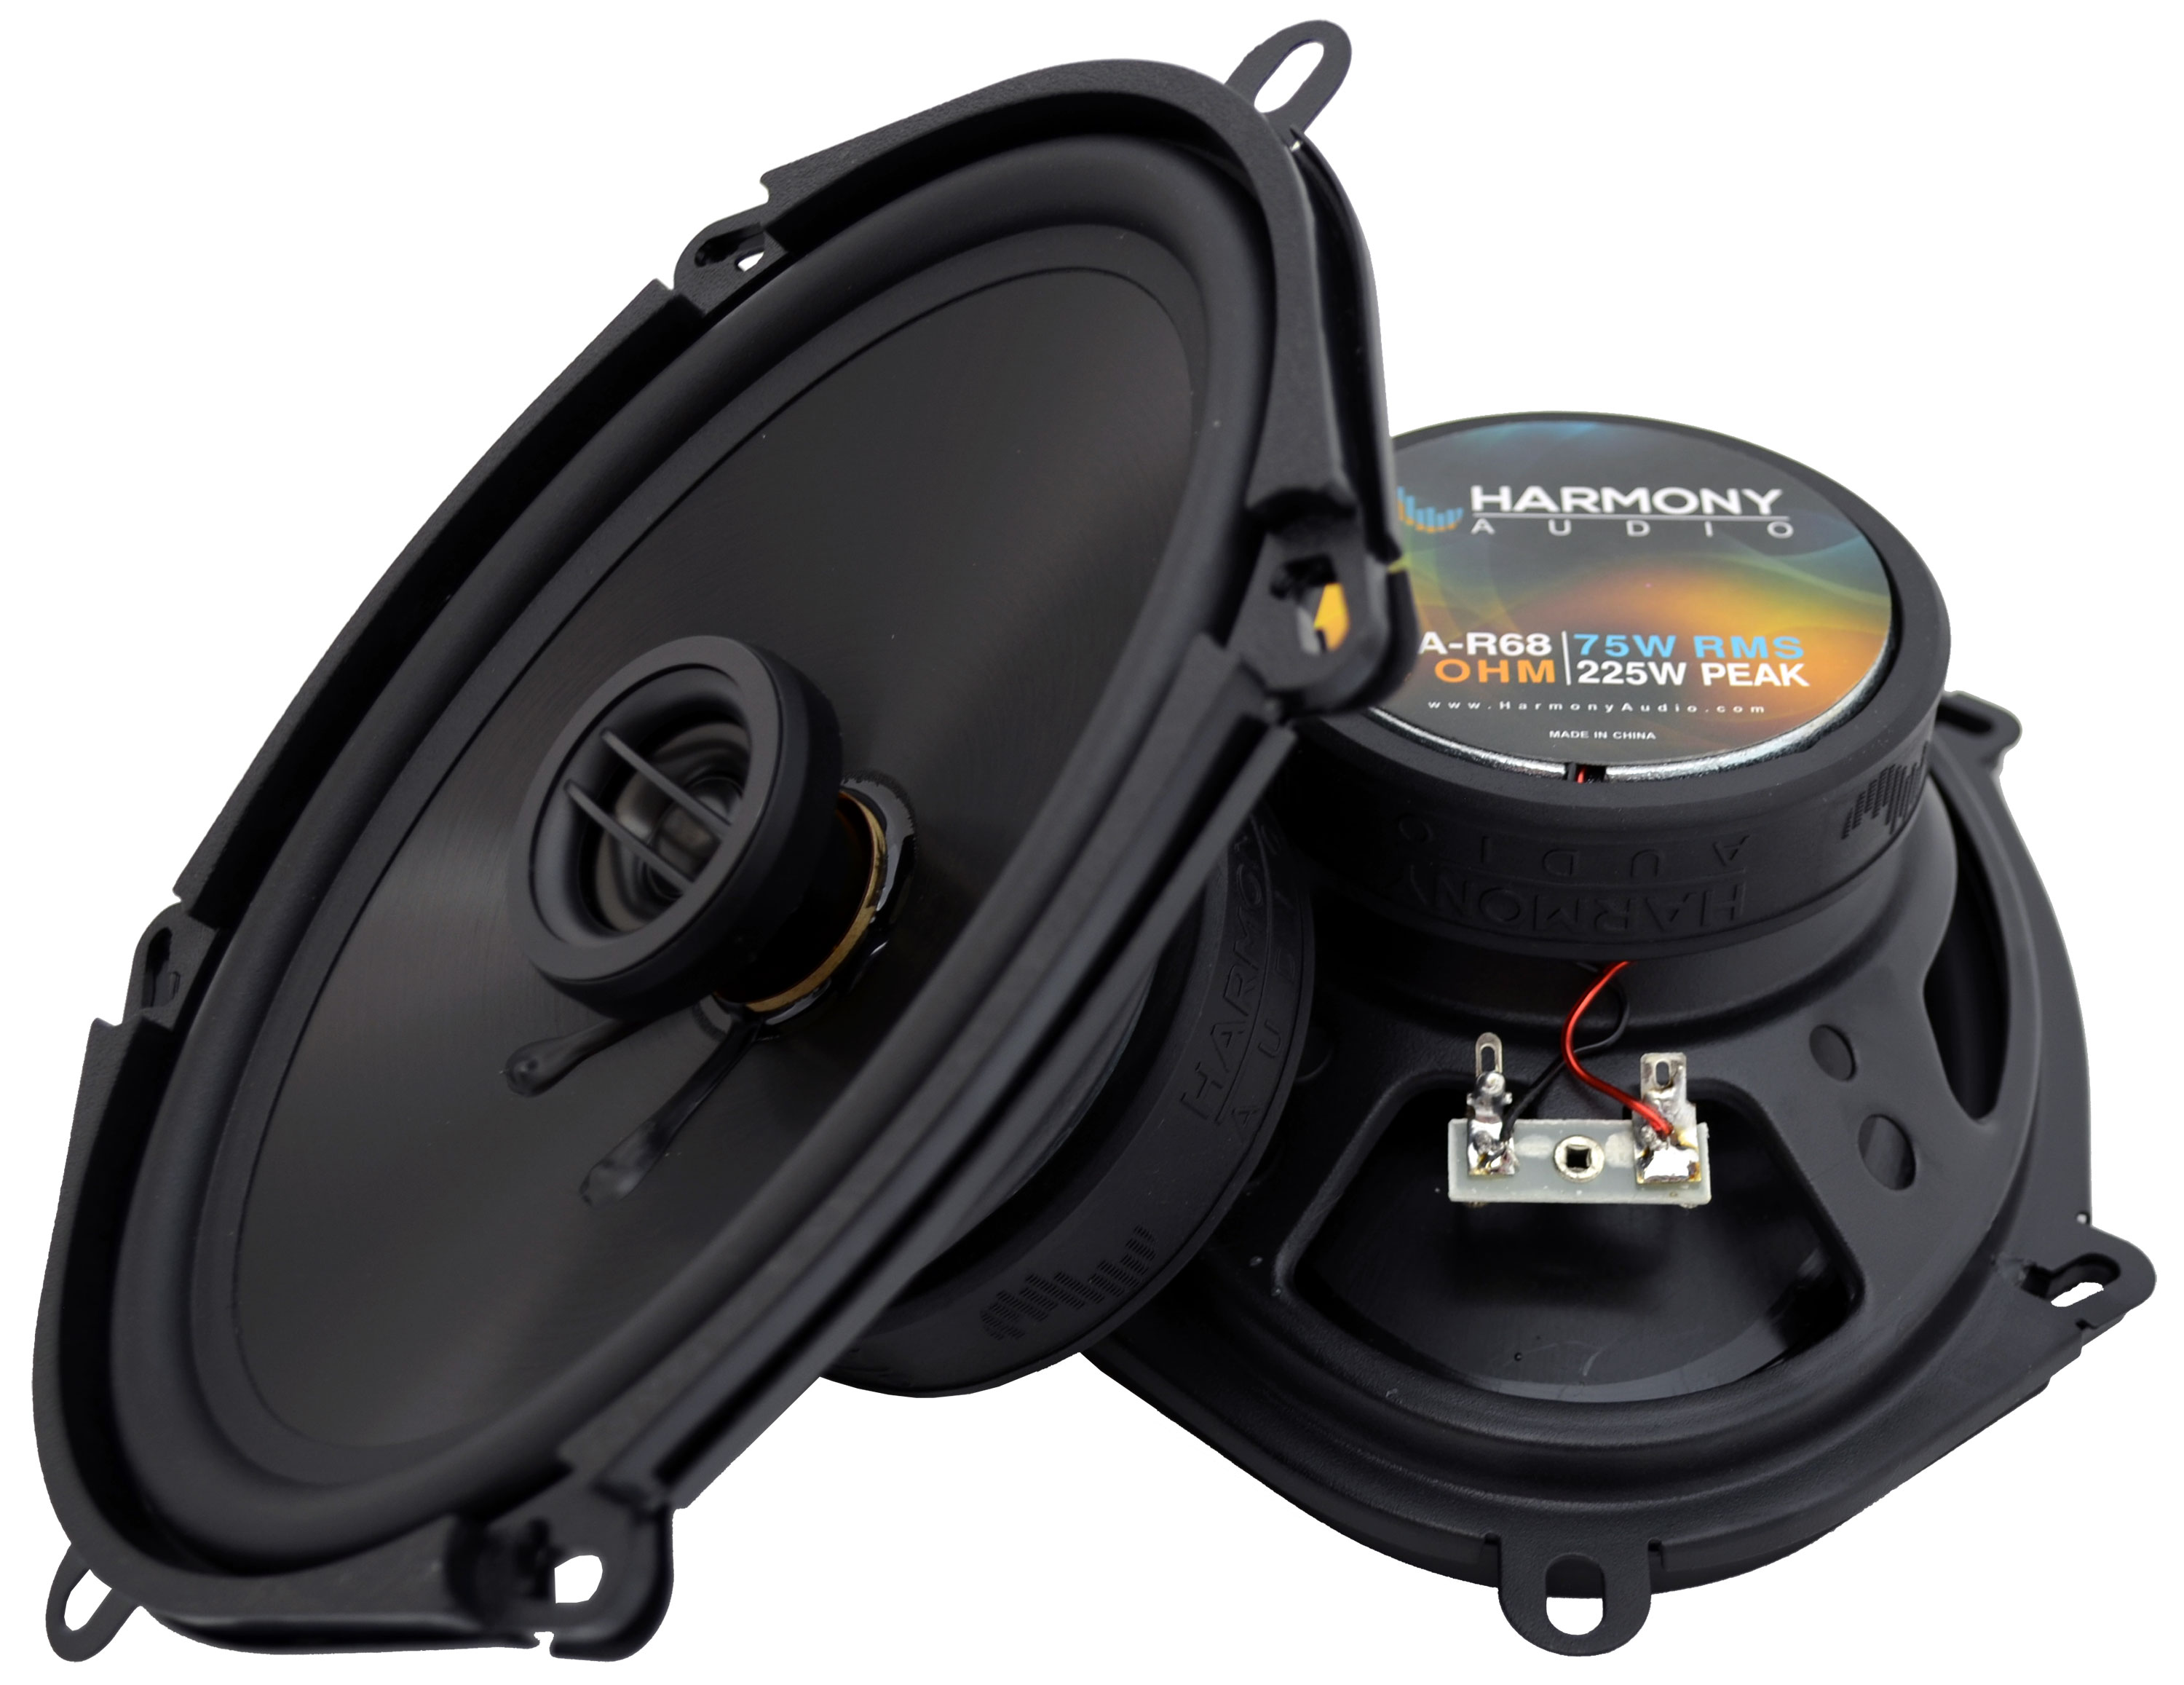 Fits Ford Freestyle 2005-2007 Rear Door Replacement Harmony HA-R68 Speakers New